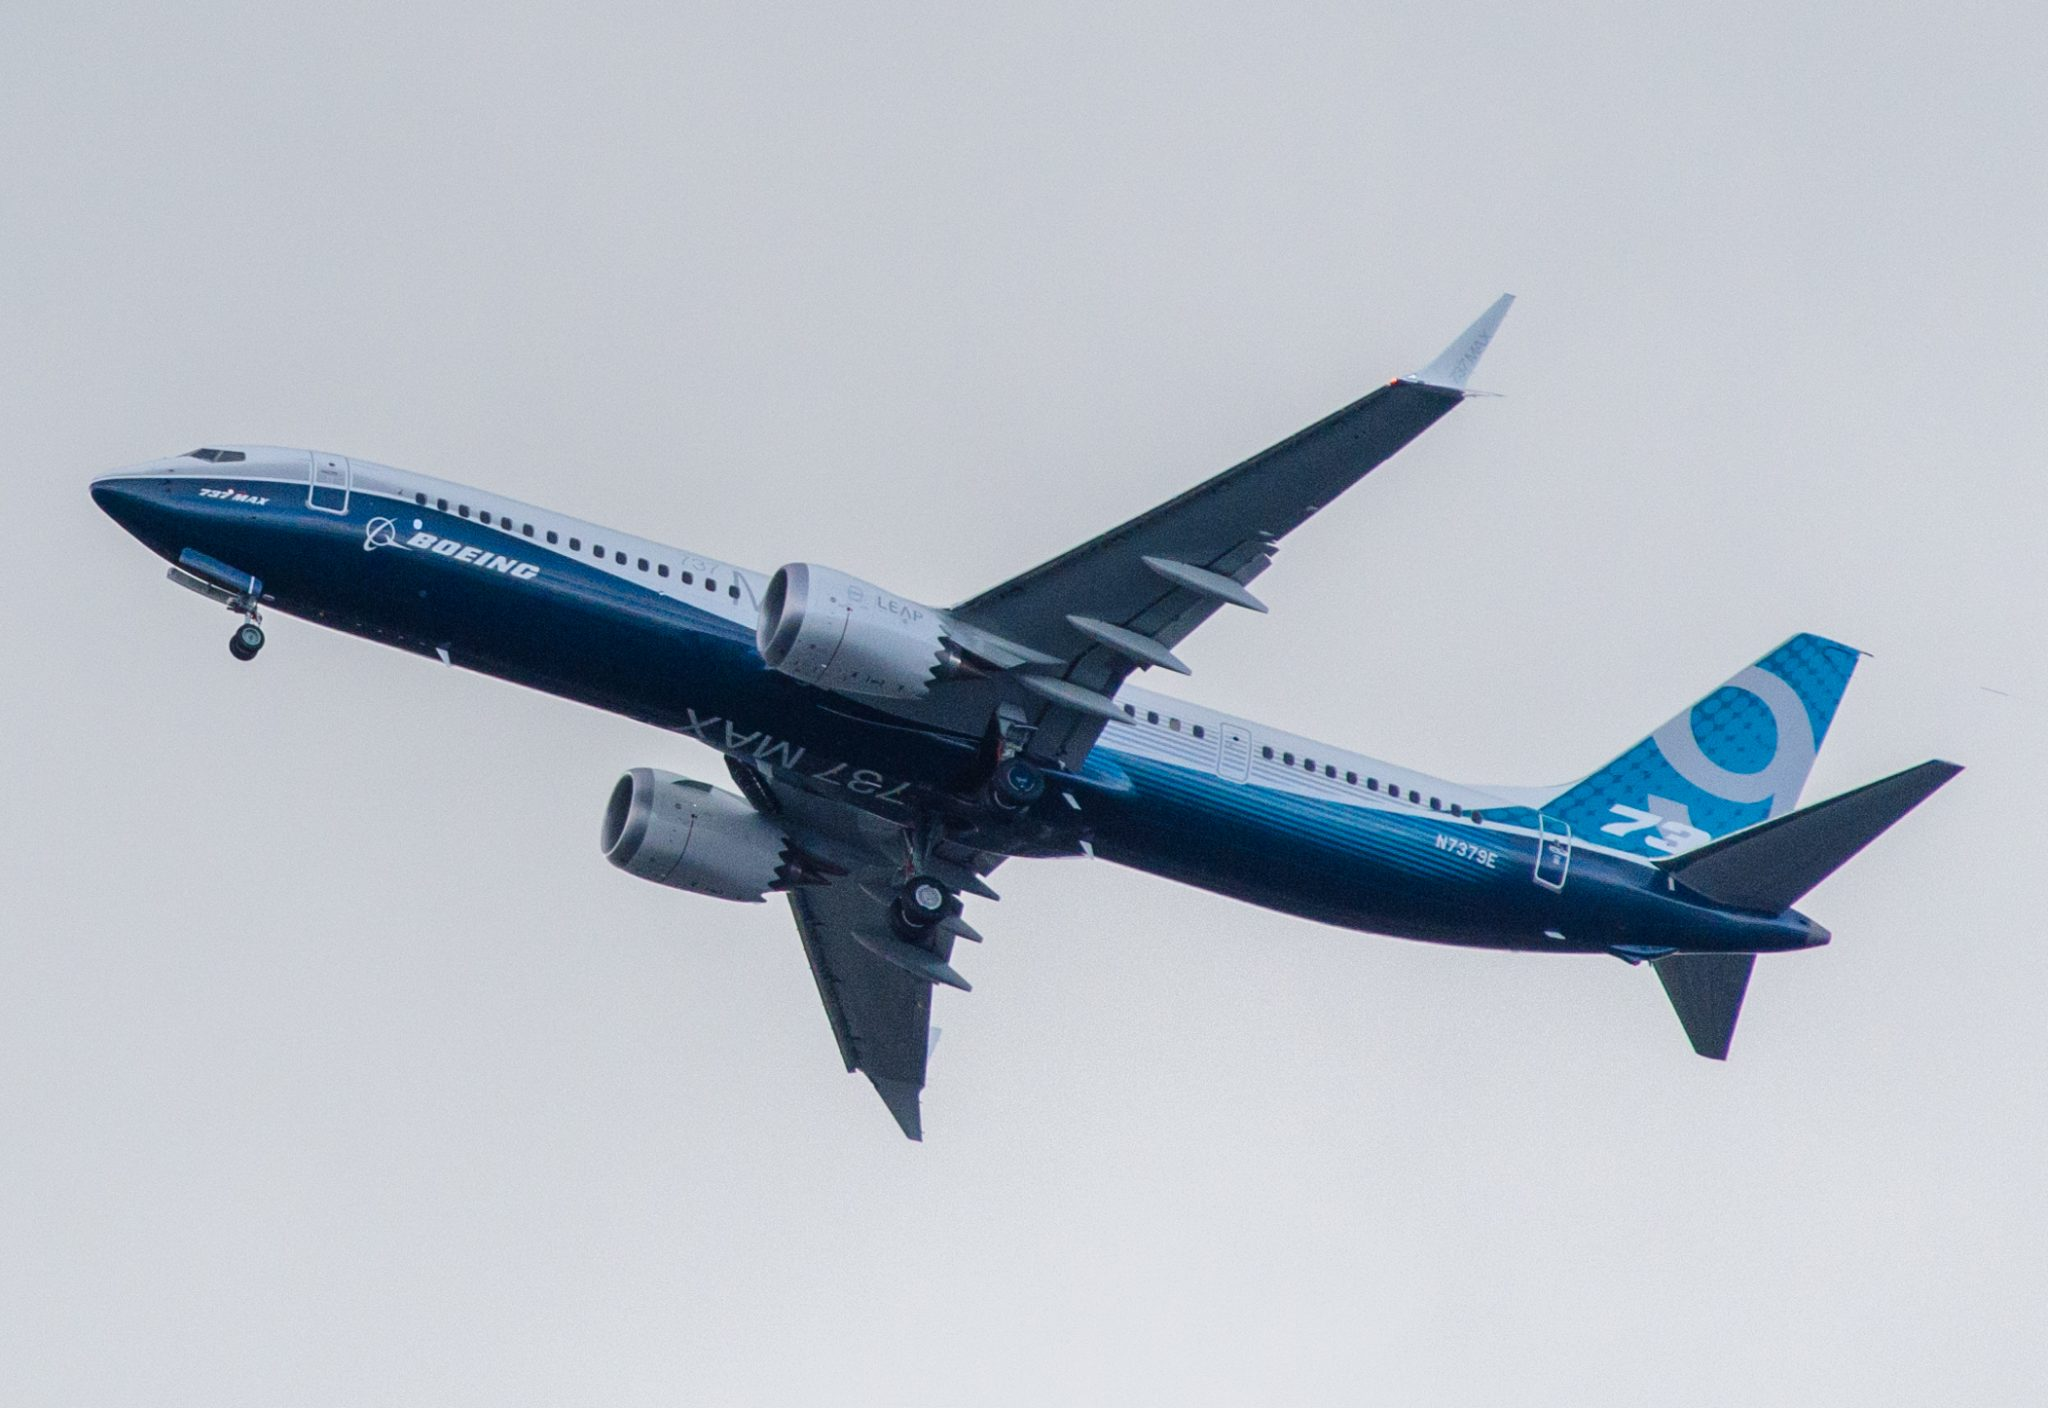 Boeing To Warn 737 MAX Operators Of A Potential Instrument Failure That Could Cause The Jet To Nose-Dive